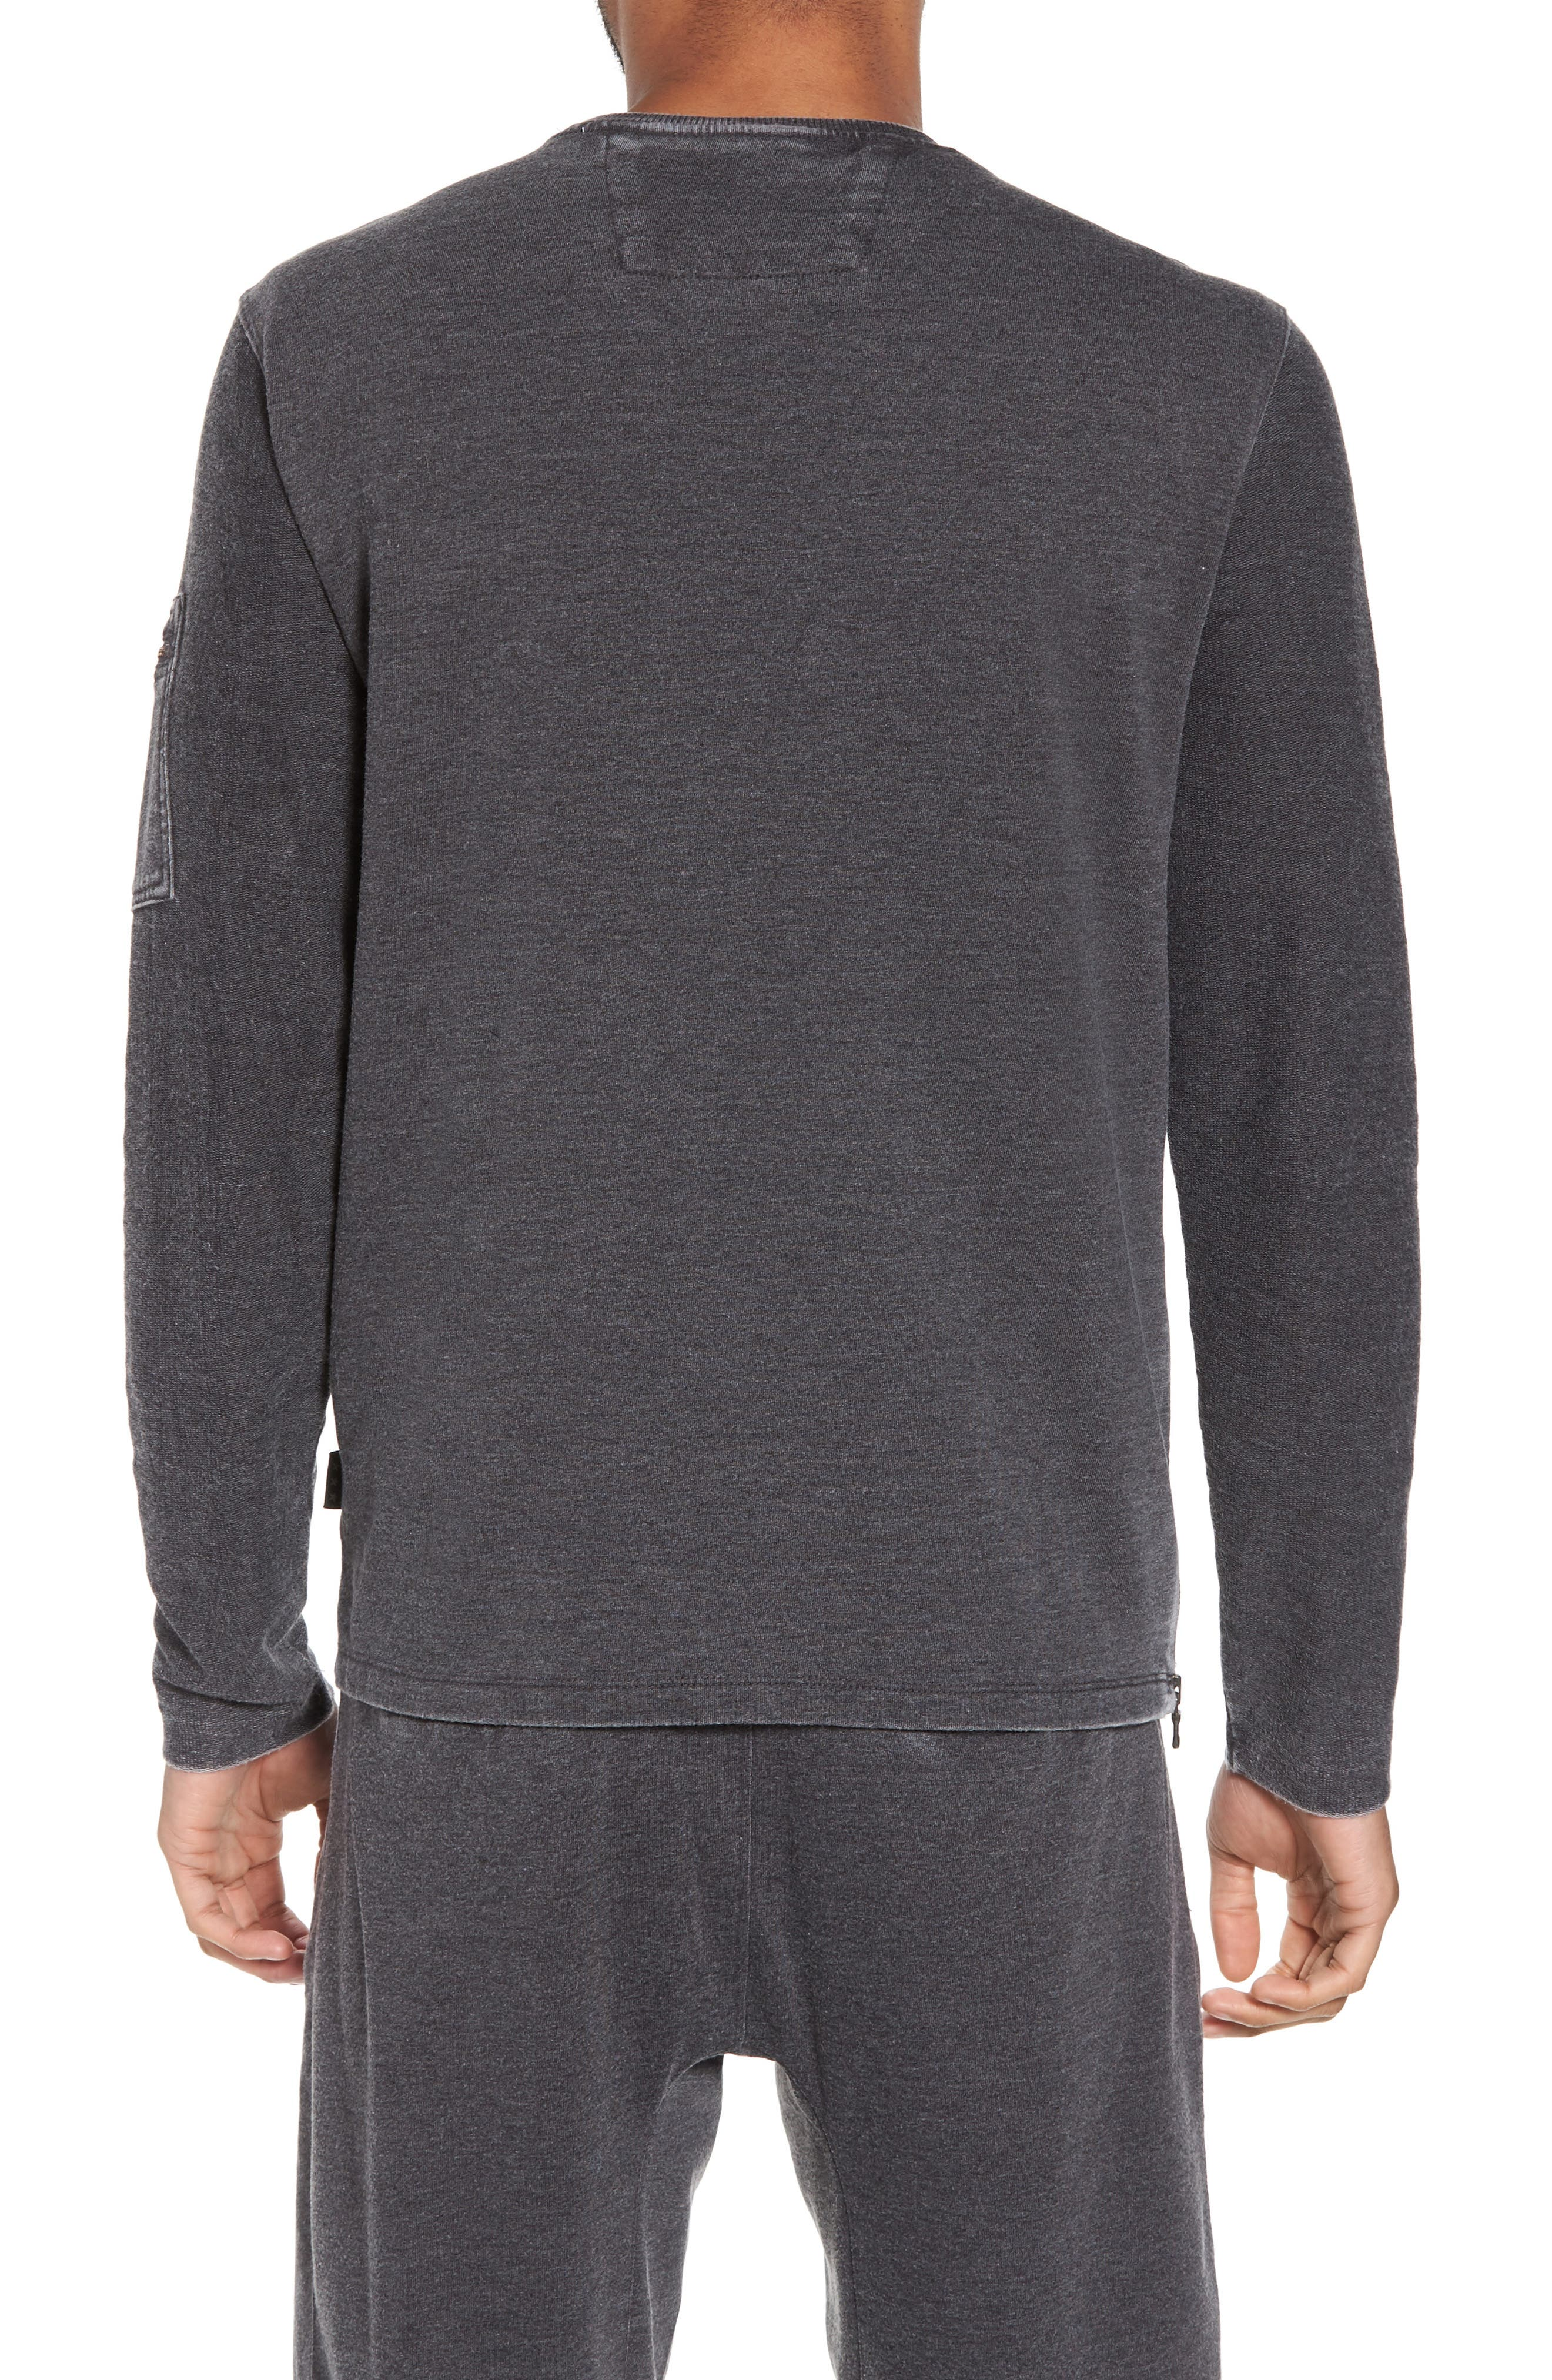 French Terry Crewneck Sweater,                             Alternate thumbnail 2, color,                             032